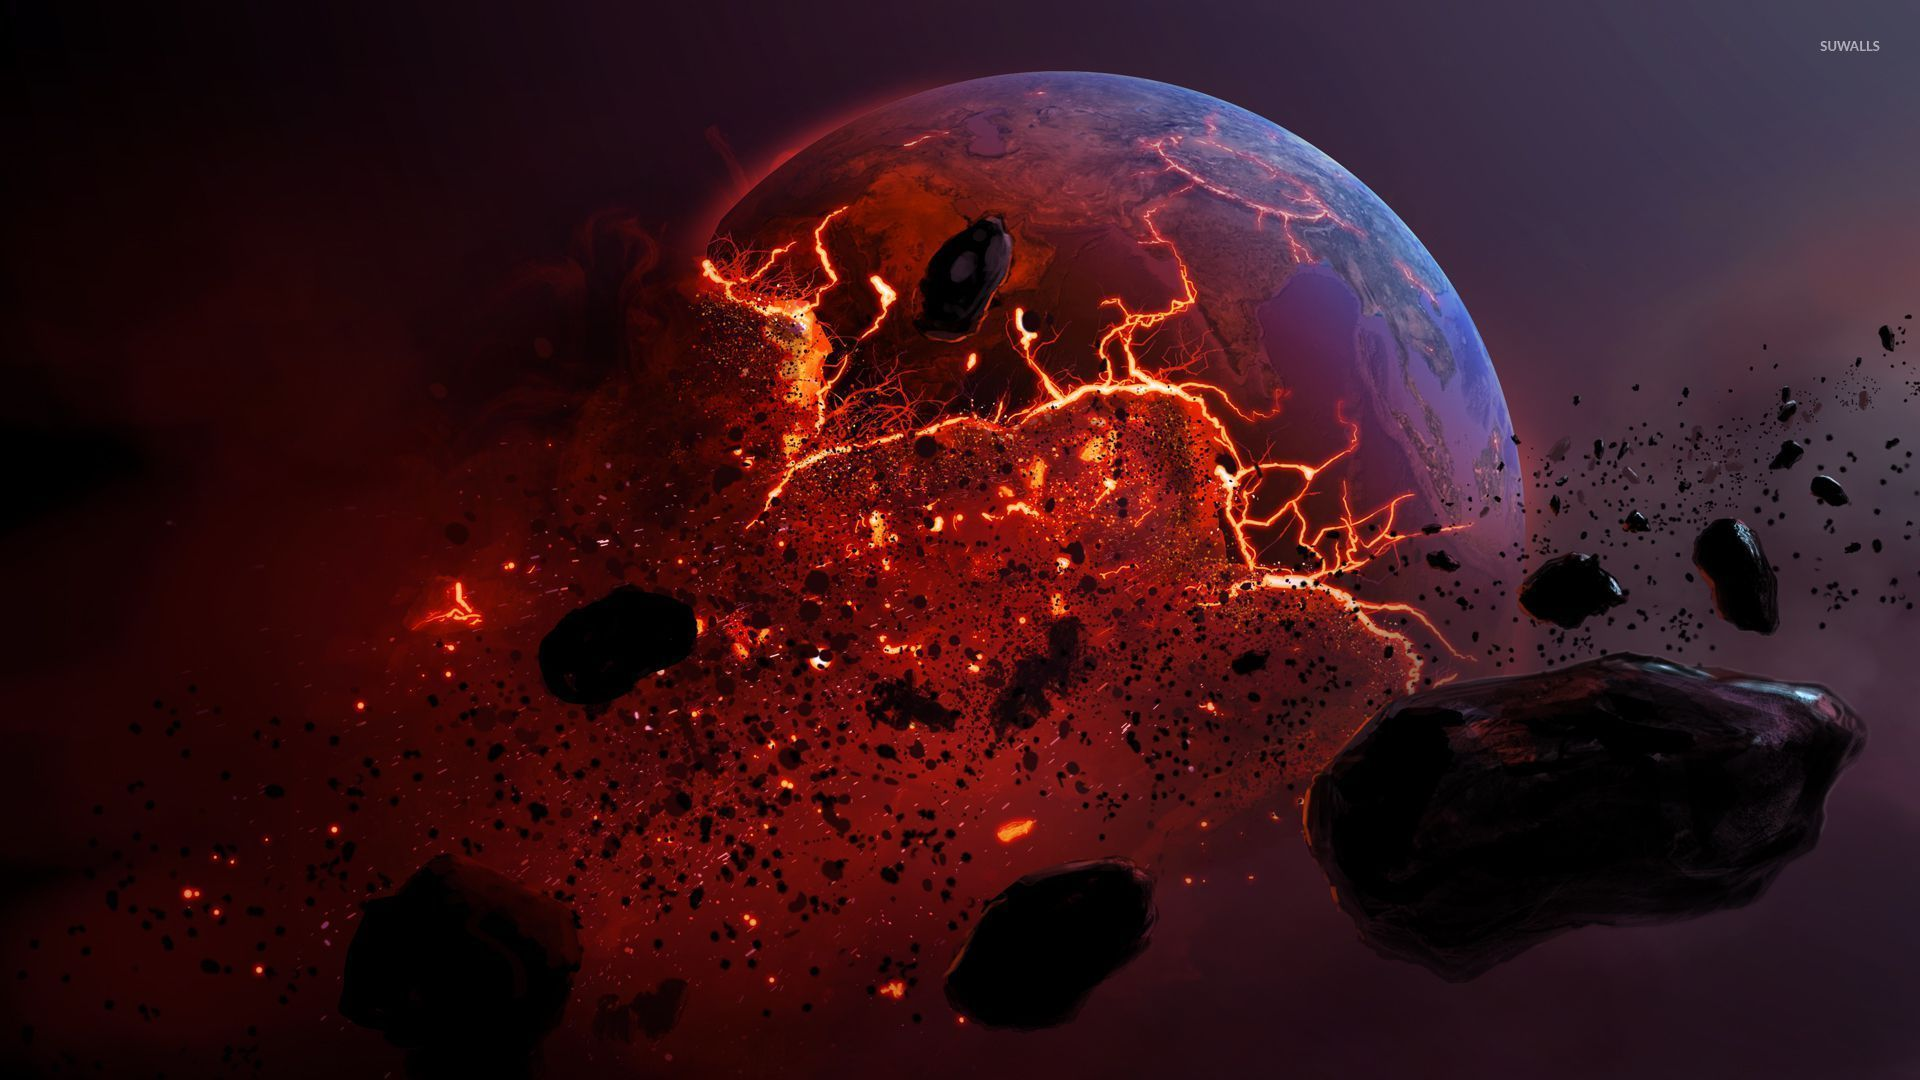 exploding planets wallpapersfor laptops-#24